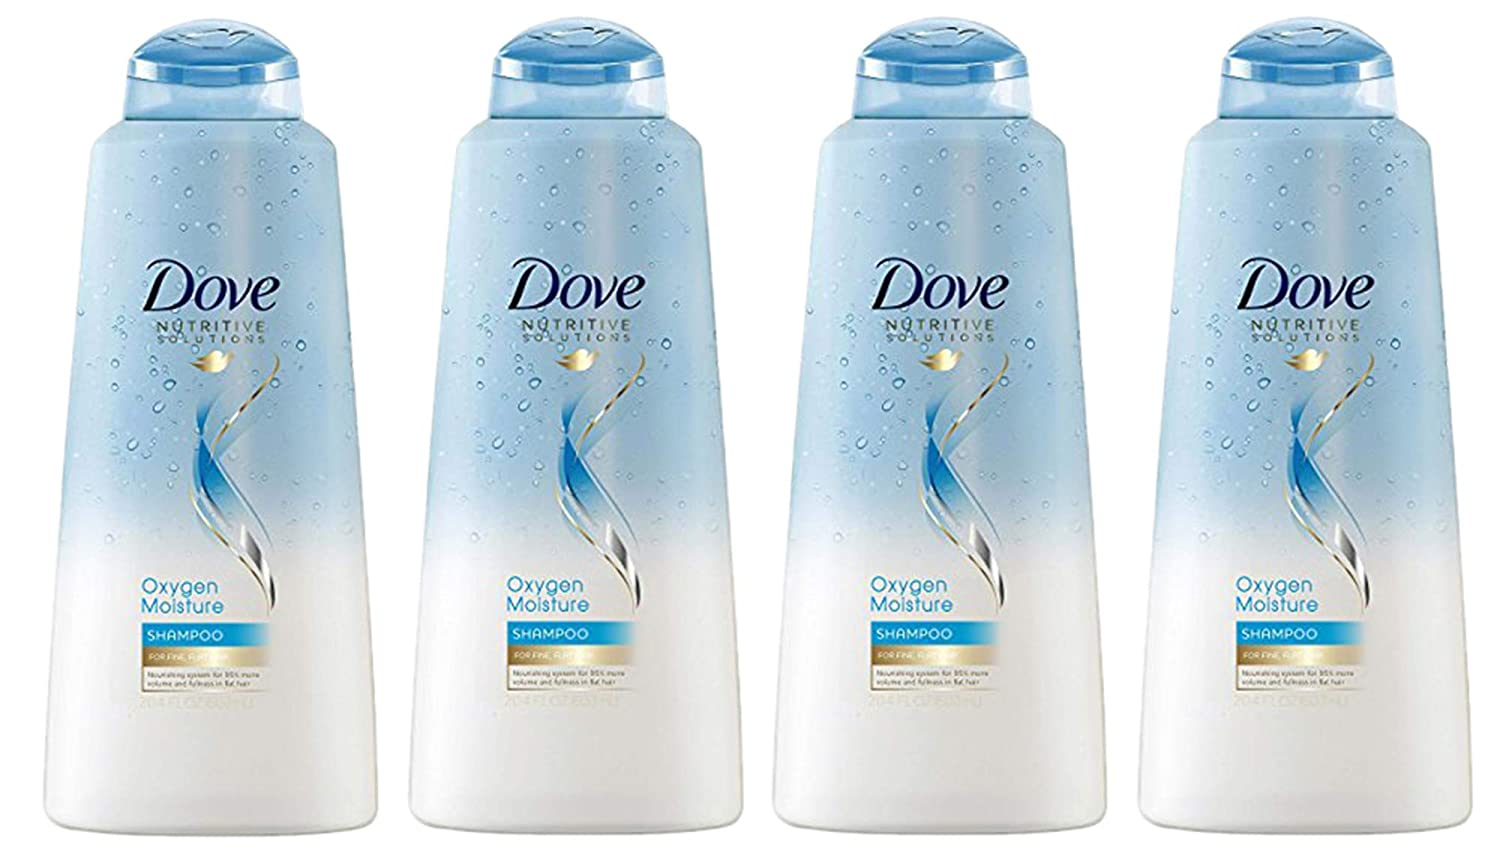 Dove Oxygen Moisture Shampoo, 20.4 Ounce, Pack of 4